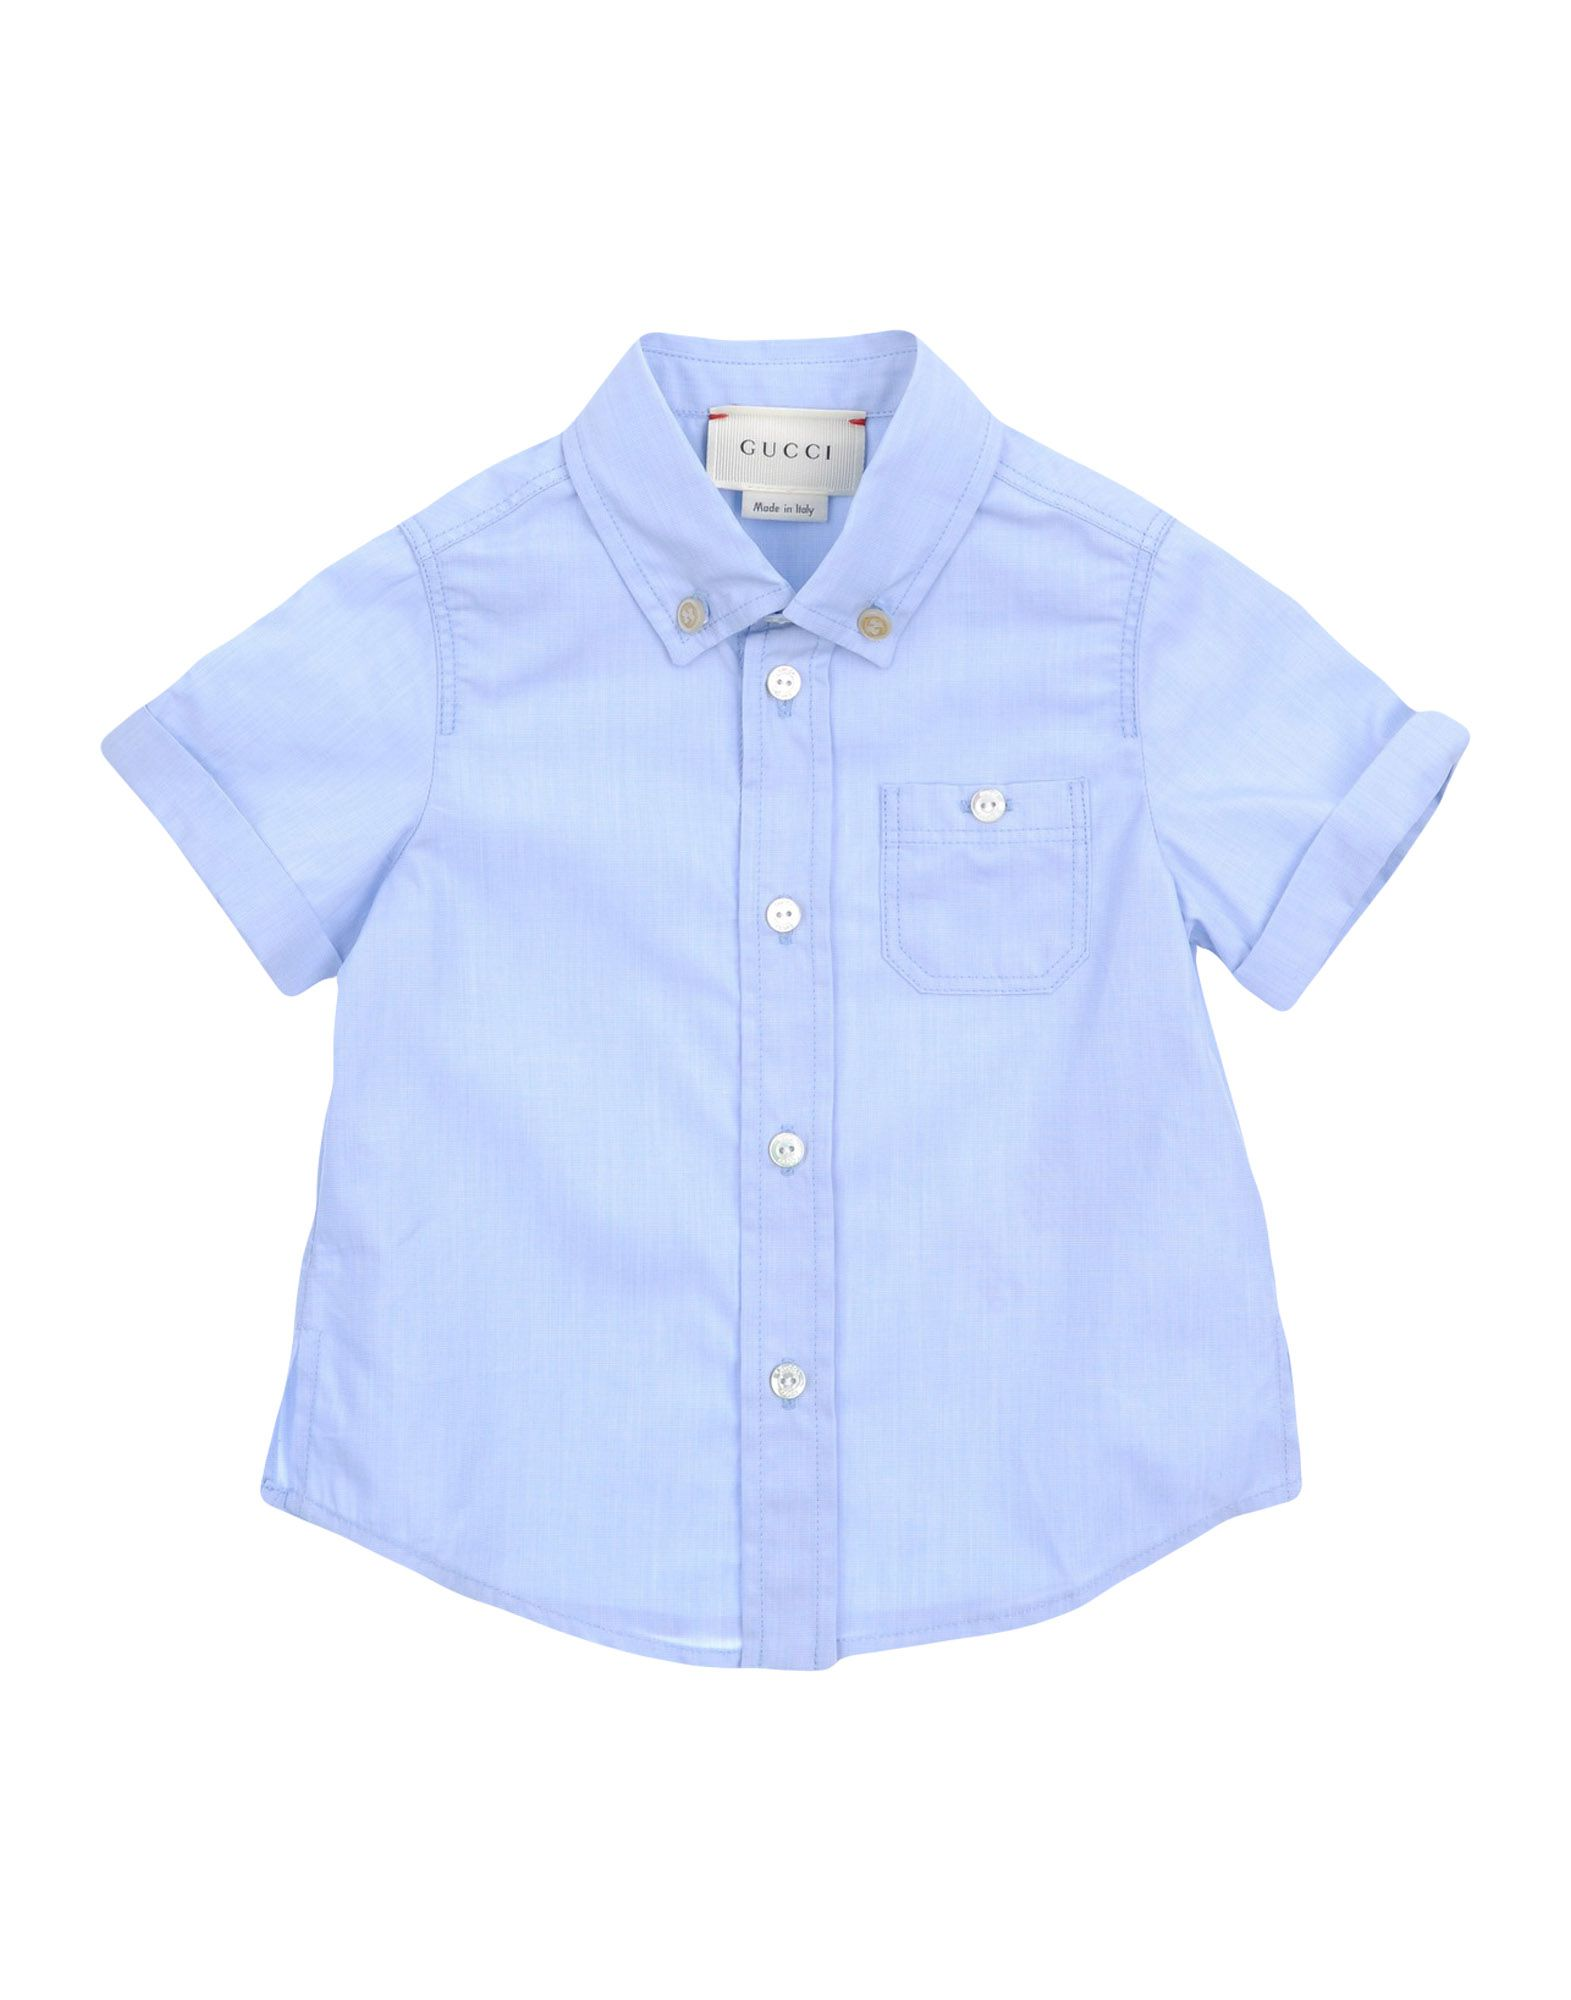 Gucci clothing for baby boy & toddler 0 24 months